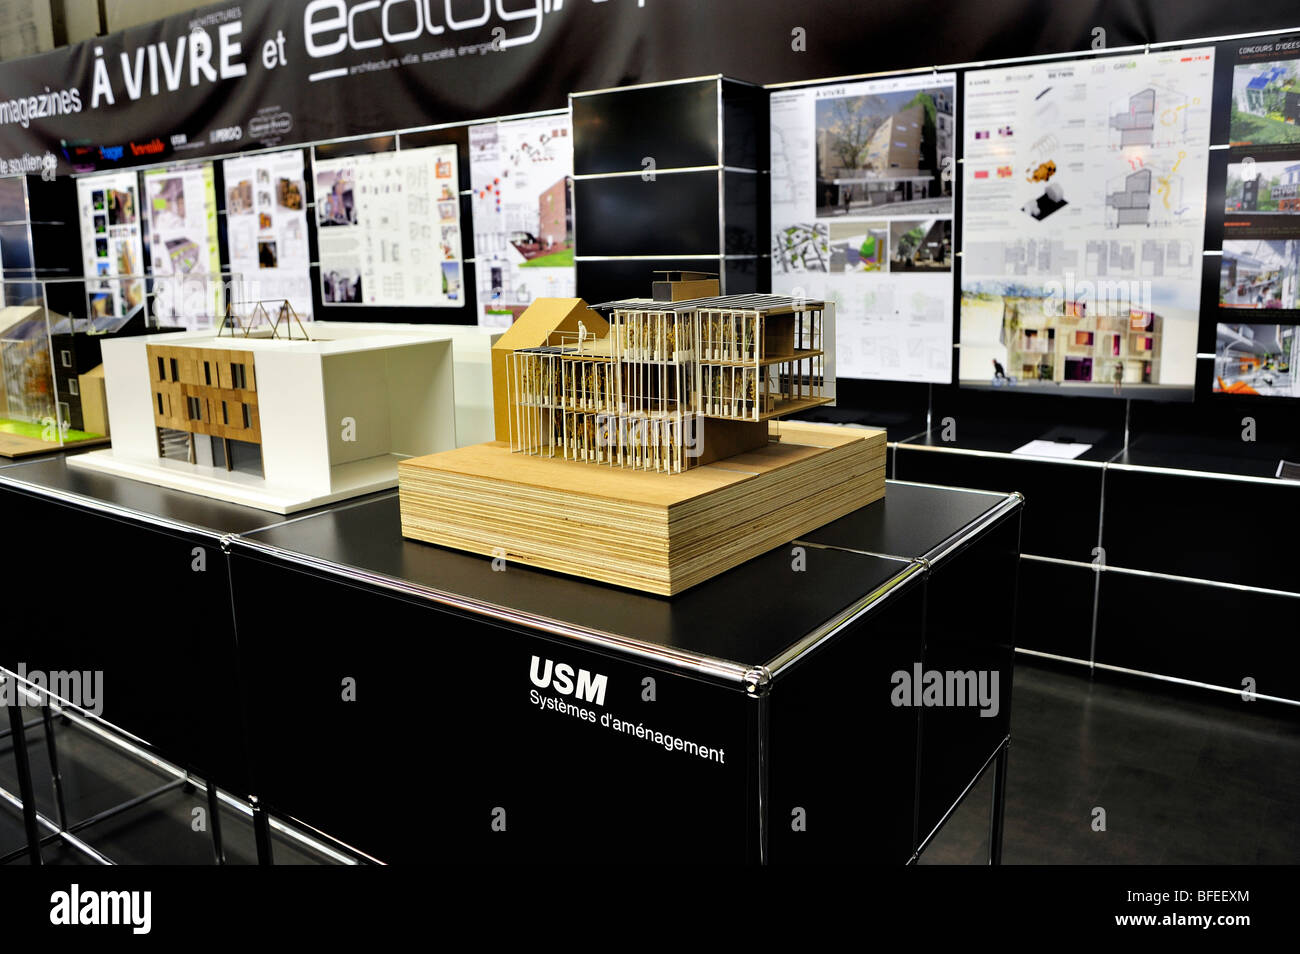 Architectural model projects display stock photos - Salon eco construction ...